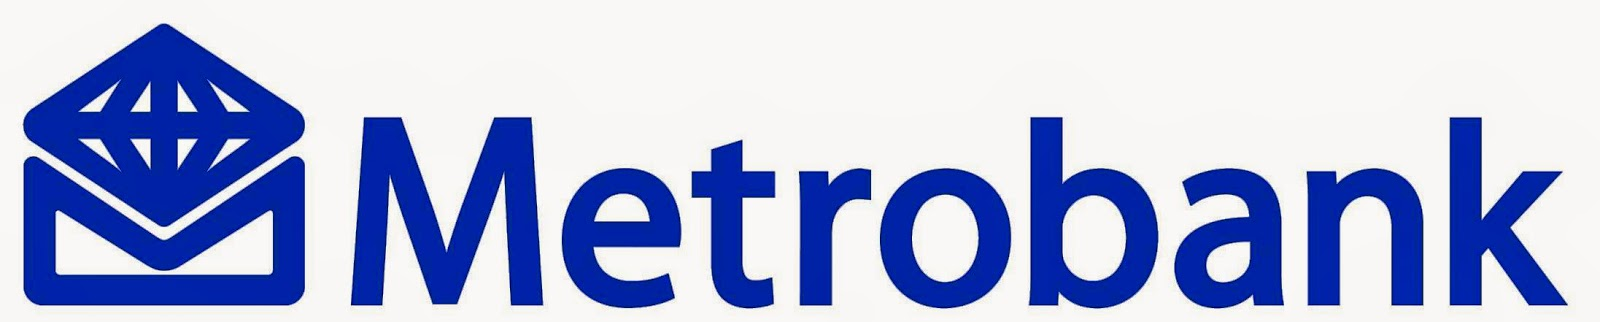 Metrobank Credit Card Savor Promos November 30,2014 to February 28, 2015